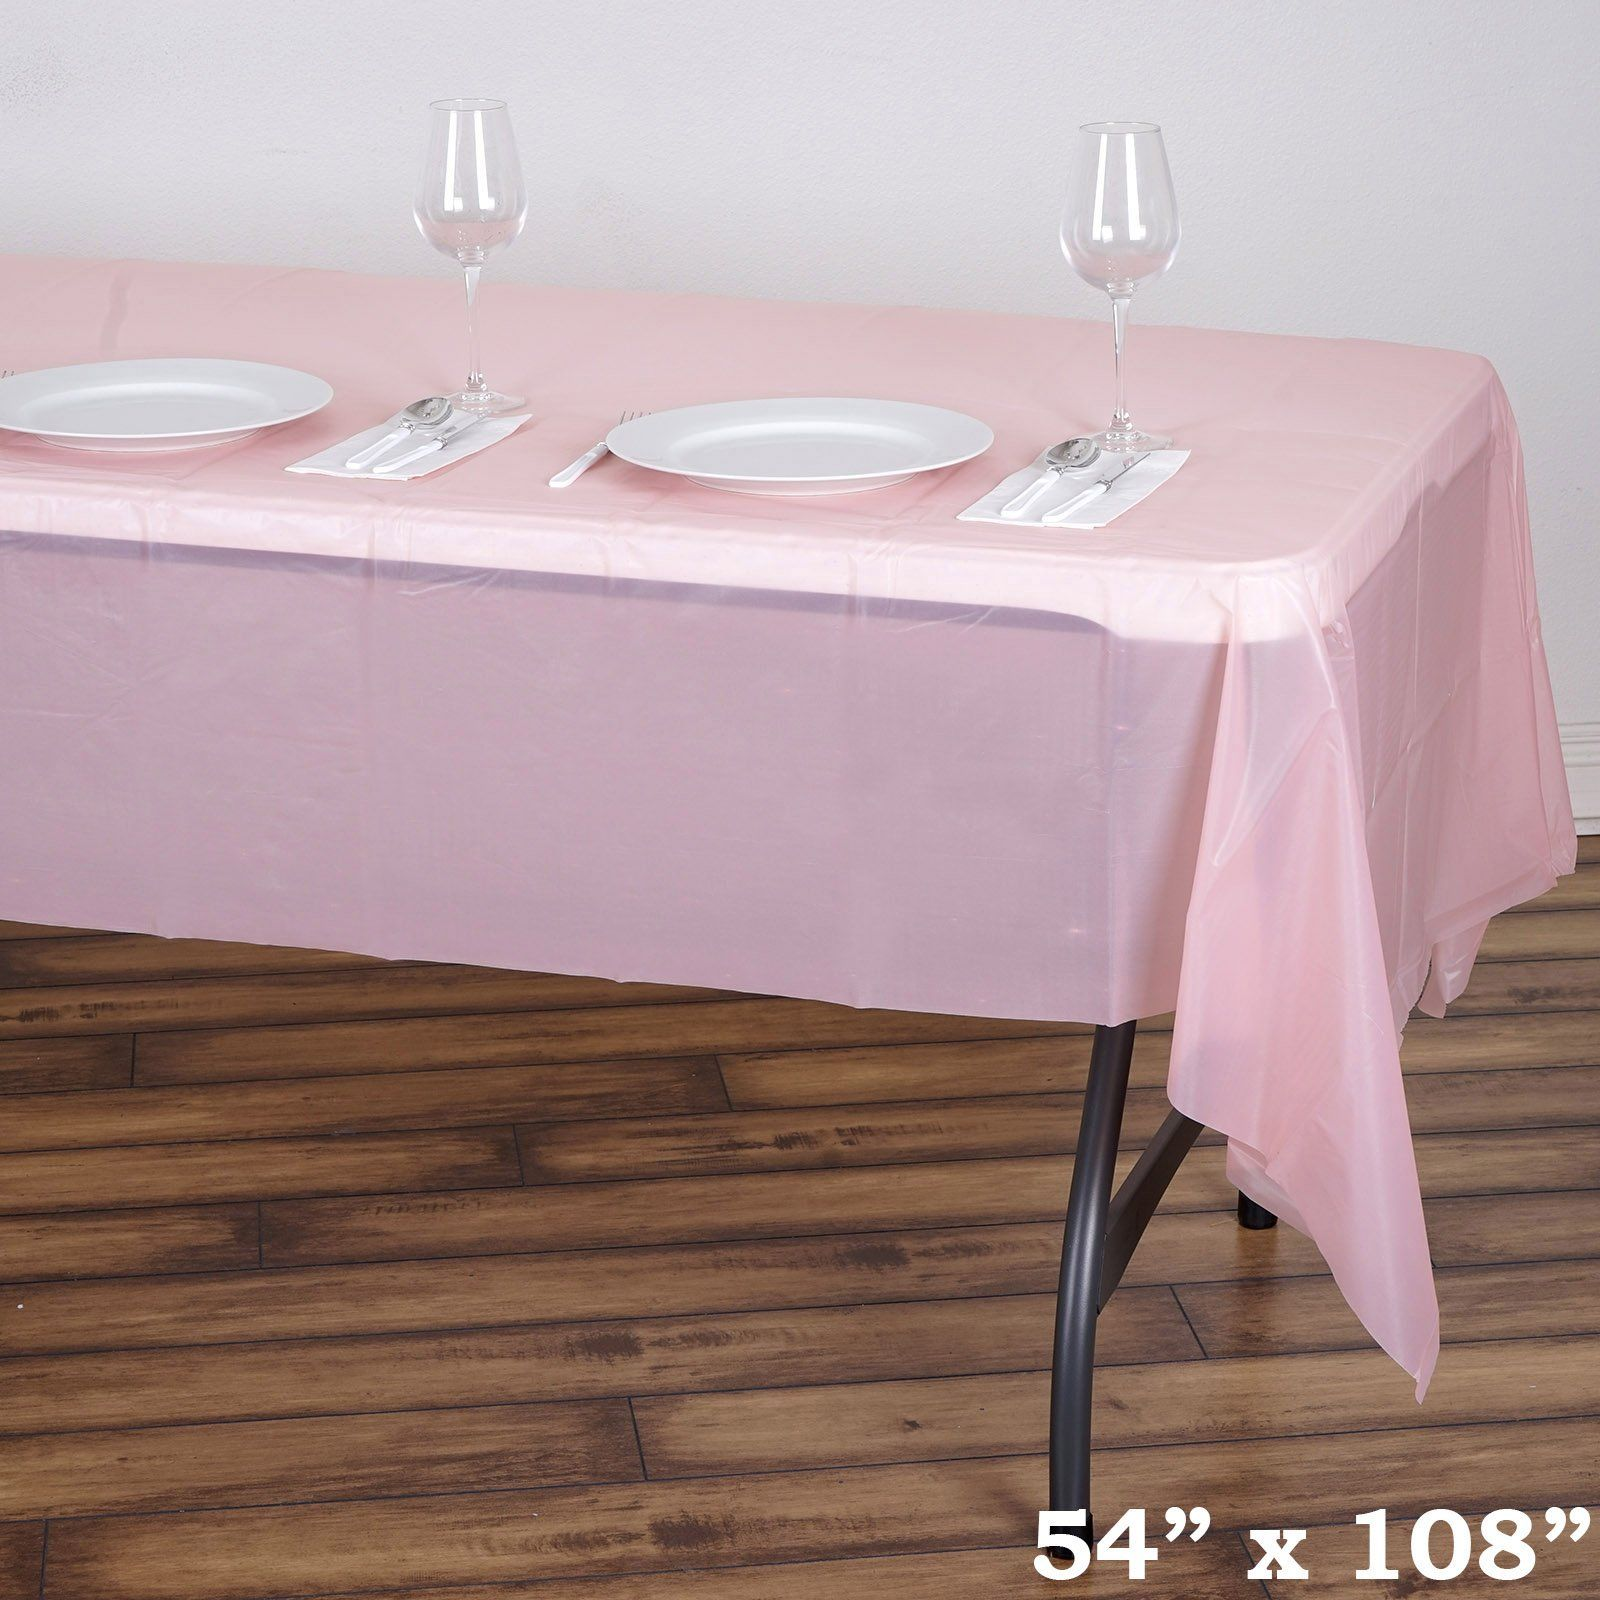 54 X 108 10 Mil Thick Waterproof Tablecloth Pvc Rectangle Disposable Tablecloth Rose Gold Blush Plastic Table Covers Plastic Tables Affordable Table